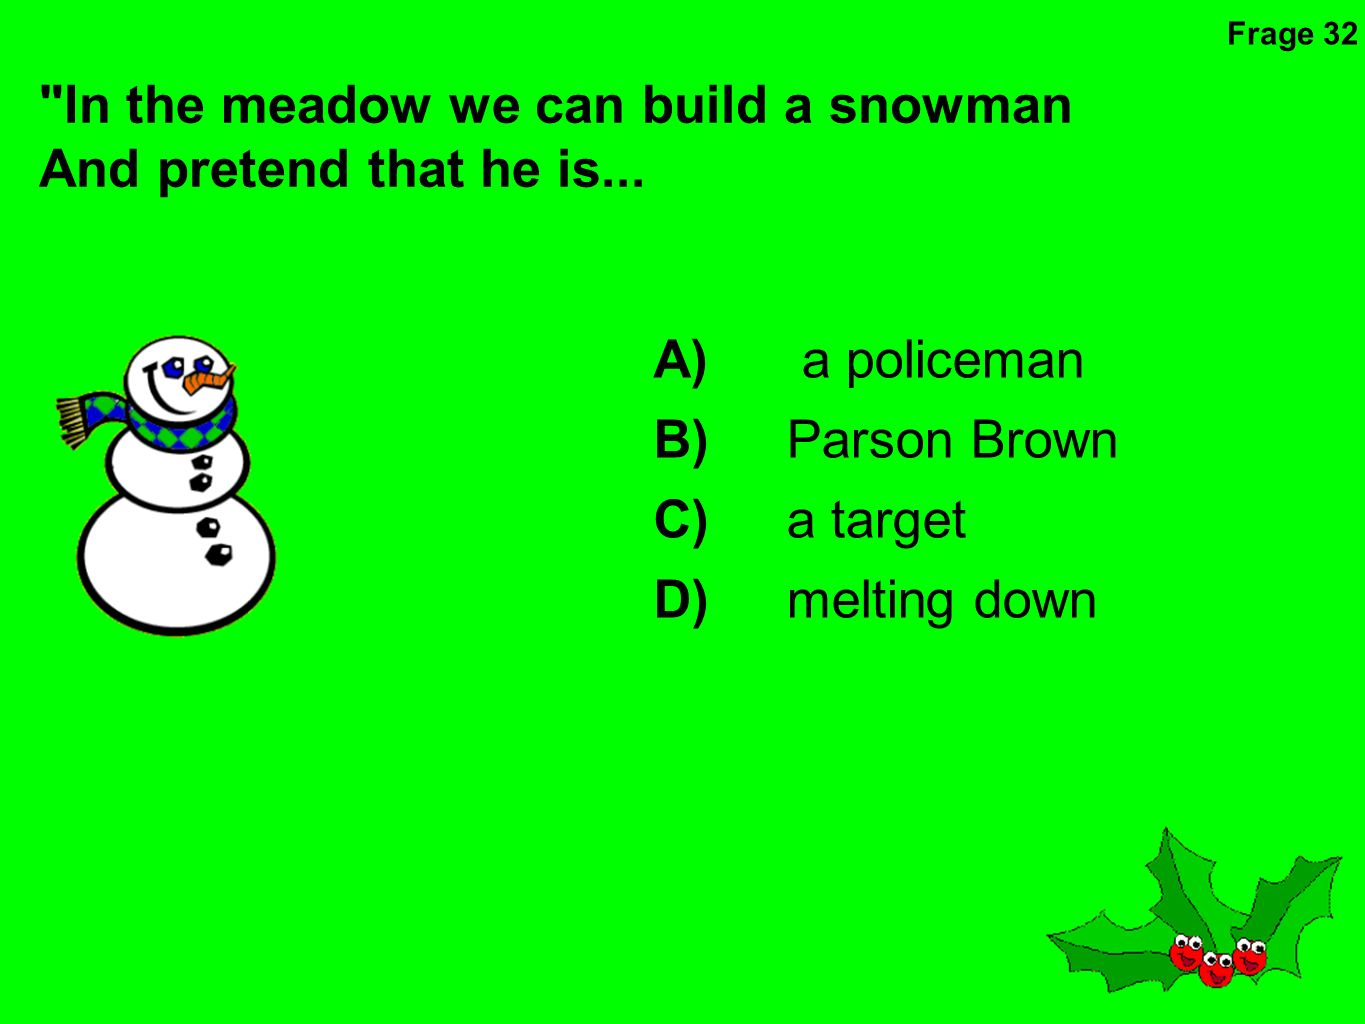 In the meadow we can build a snowman And pretend that he is...